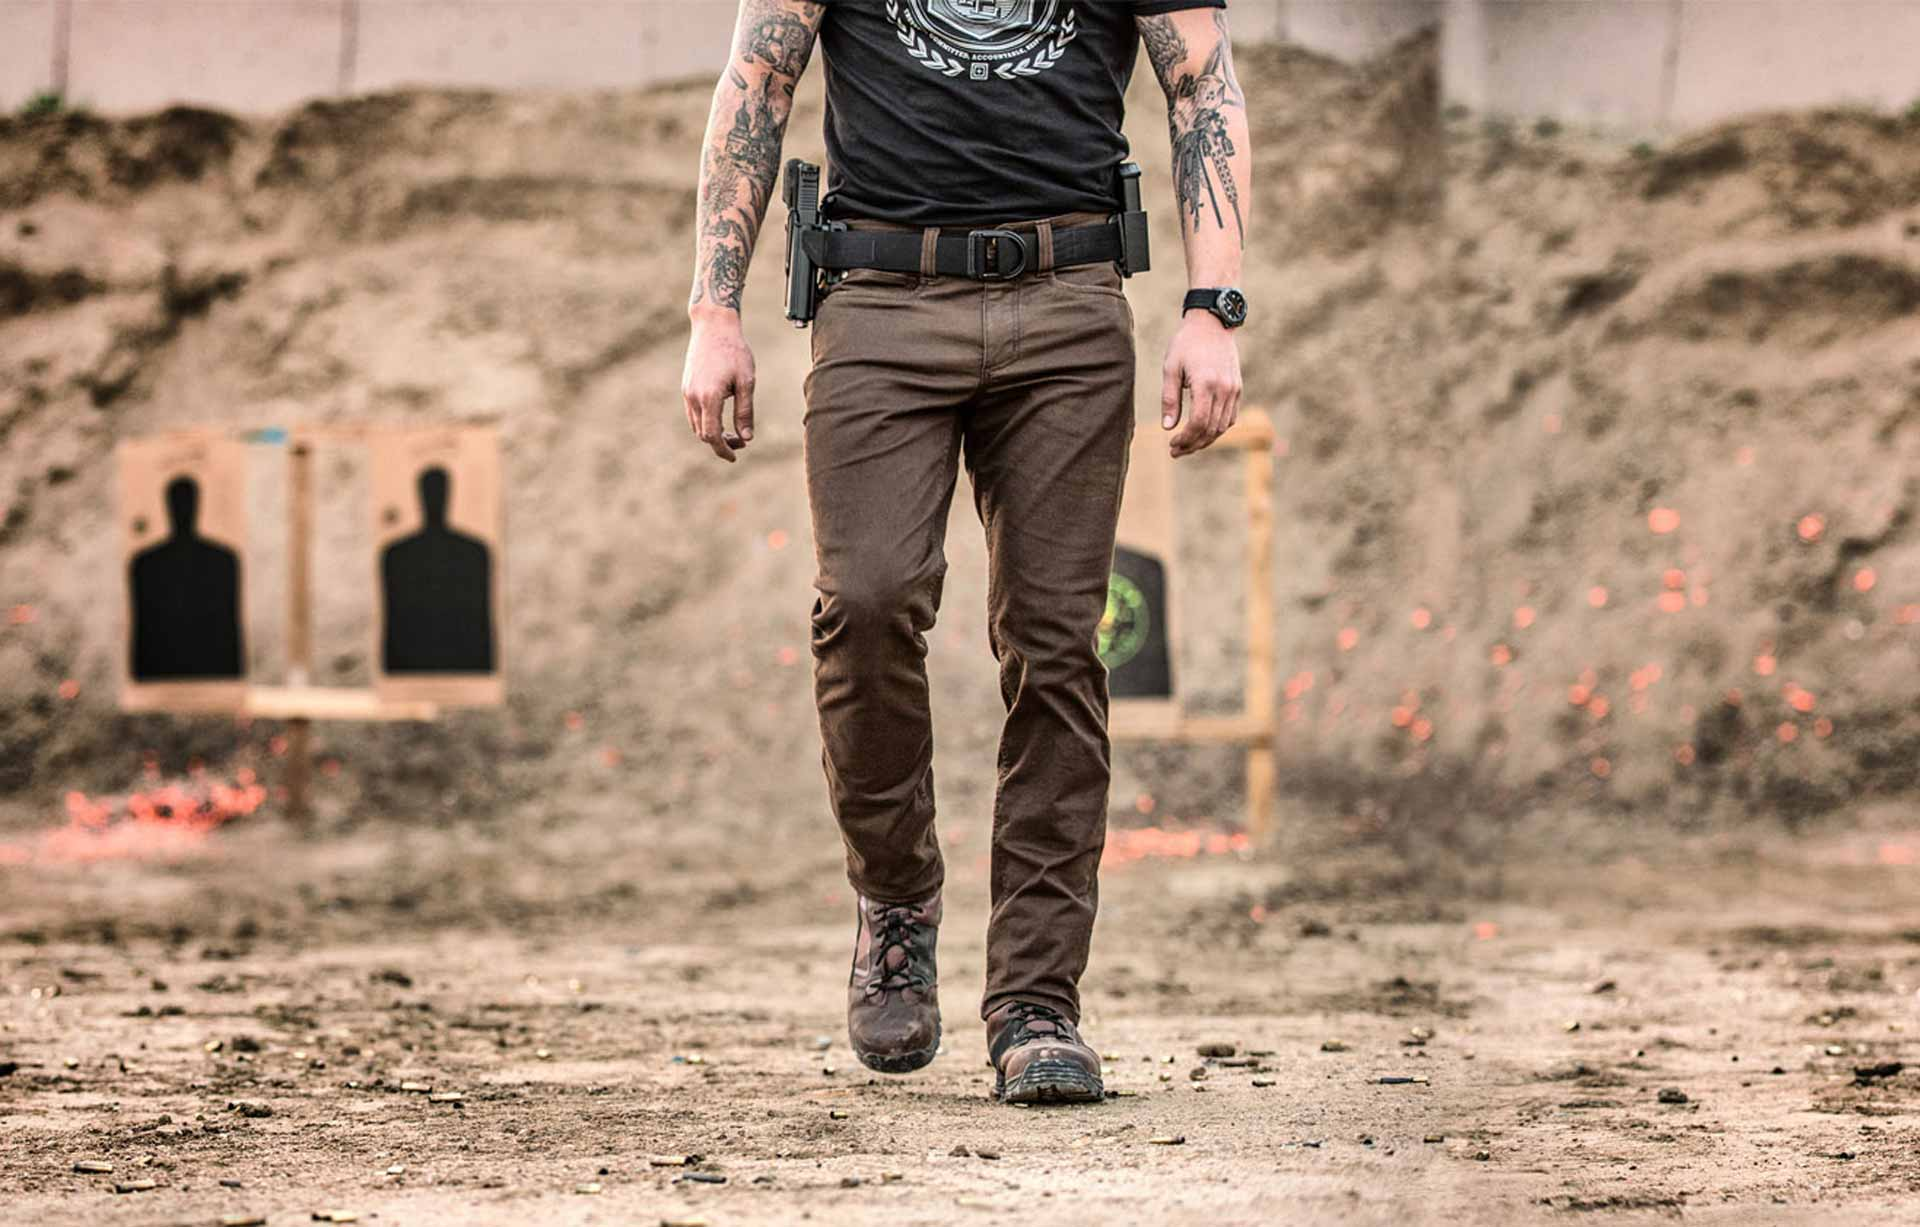 Top 8 Best Tactical Pants for 2020 - Reviews and Buyers Guide!